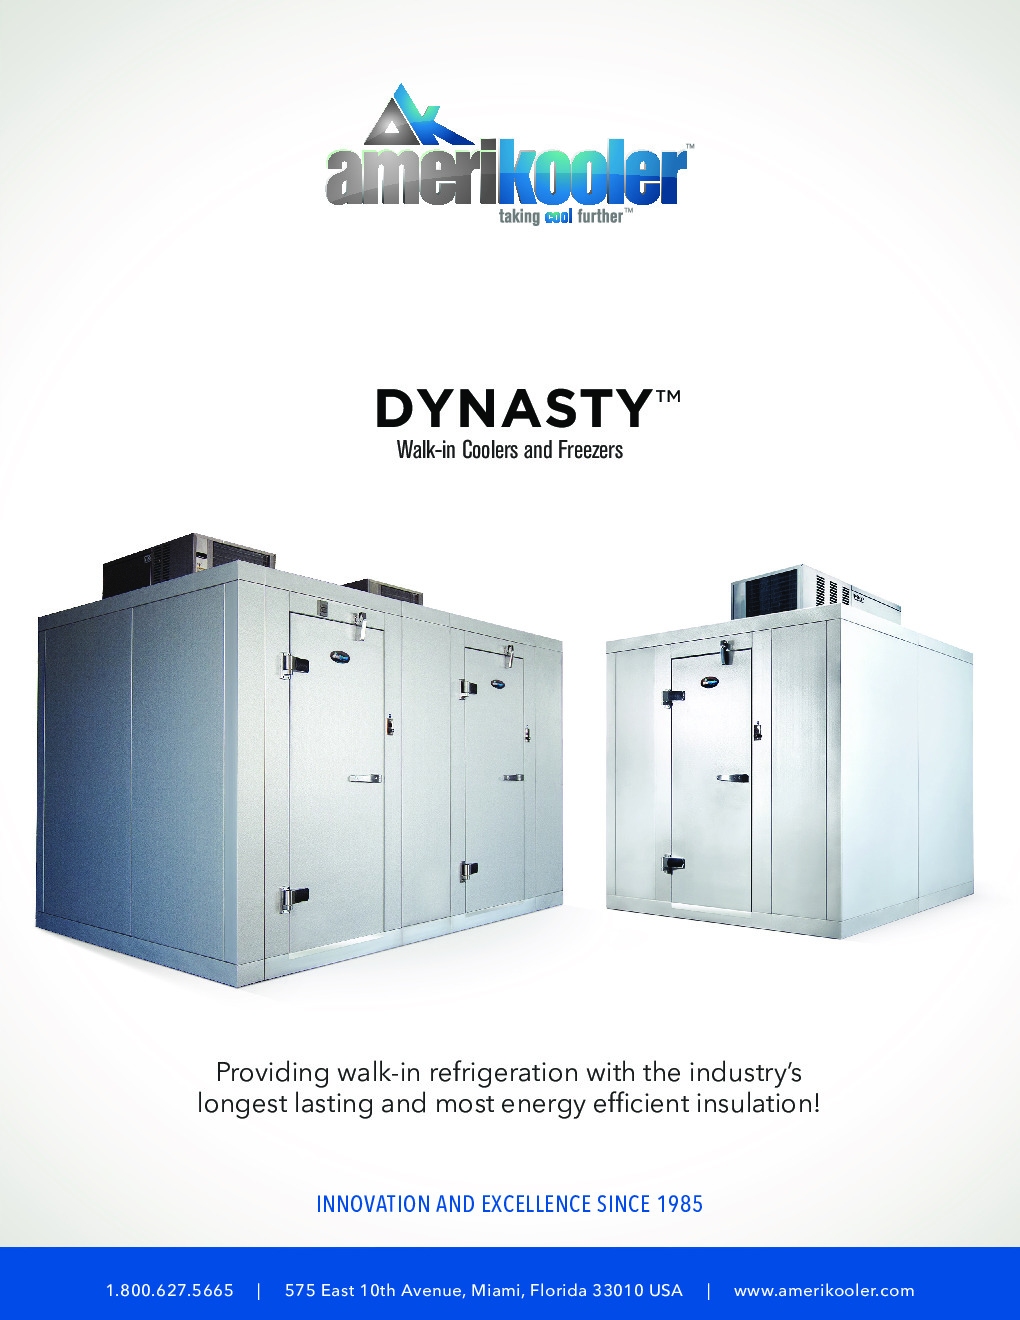 AmeriKooler DW101377F-6/7-SC 10' X 13' Walk-In Cooler, 7' L Cooler with Floor and 6' L Freezer, Self Contained